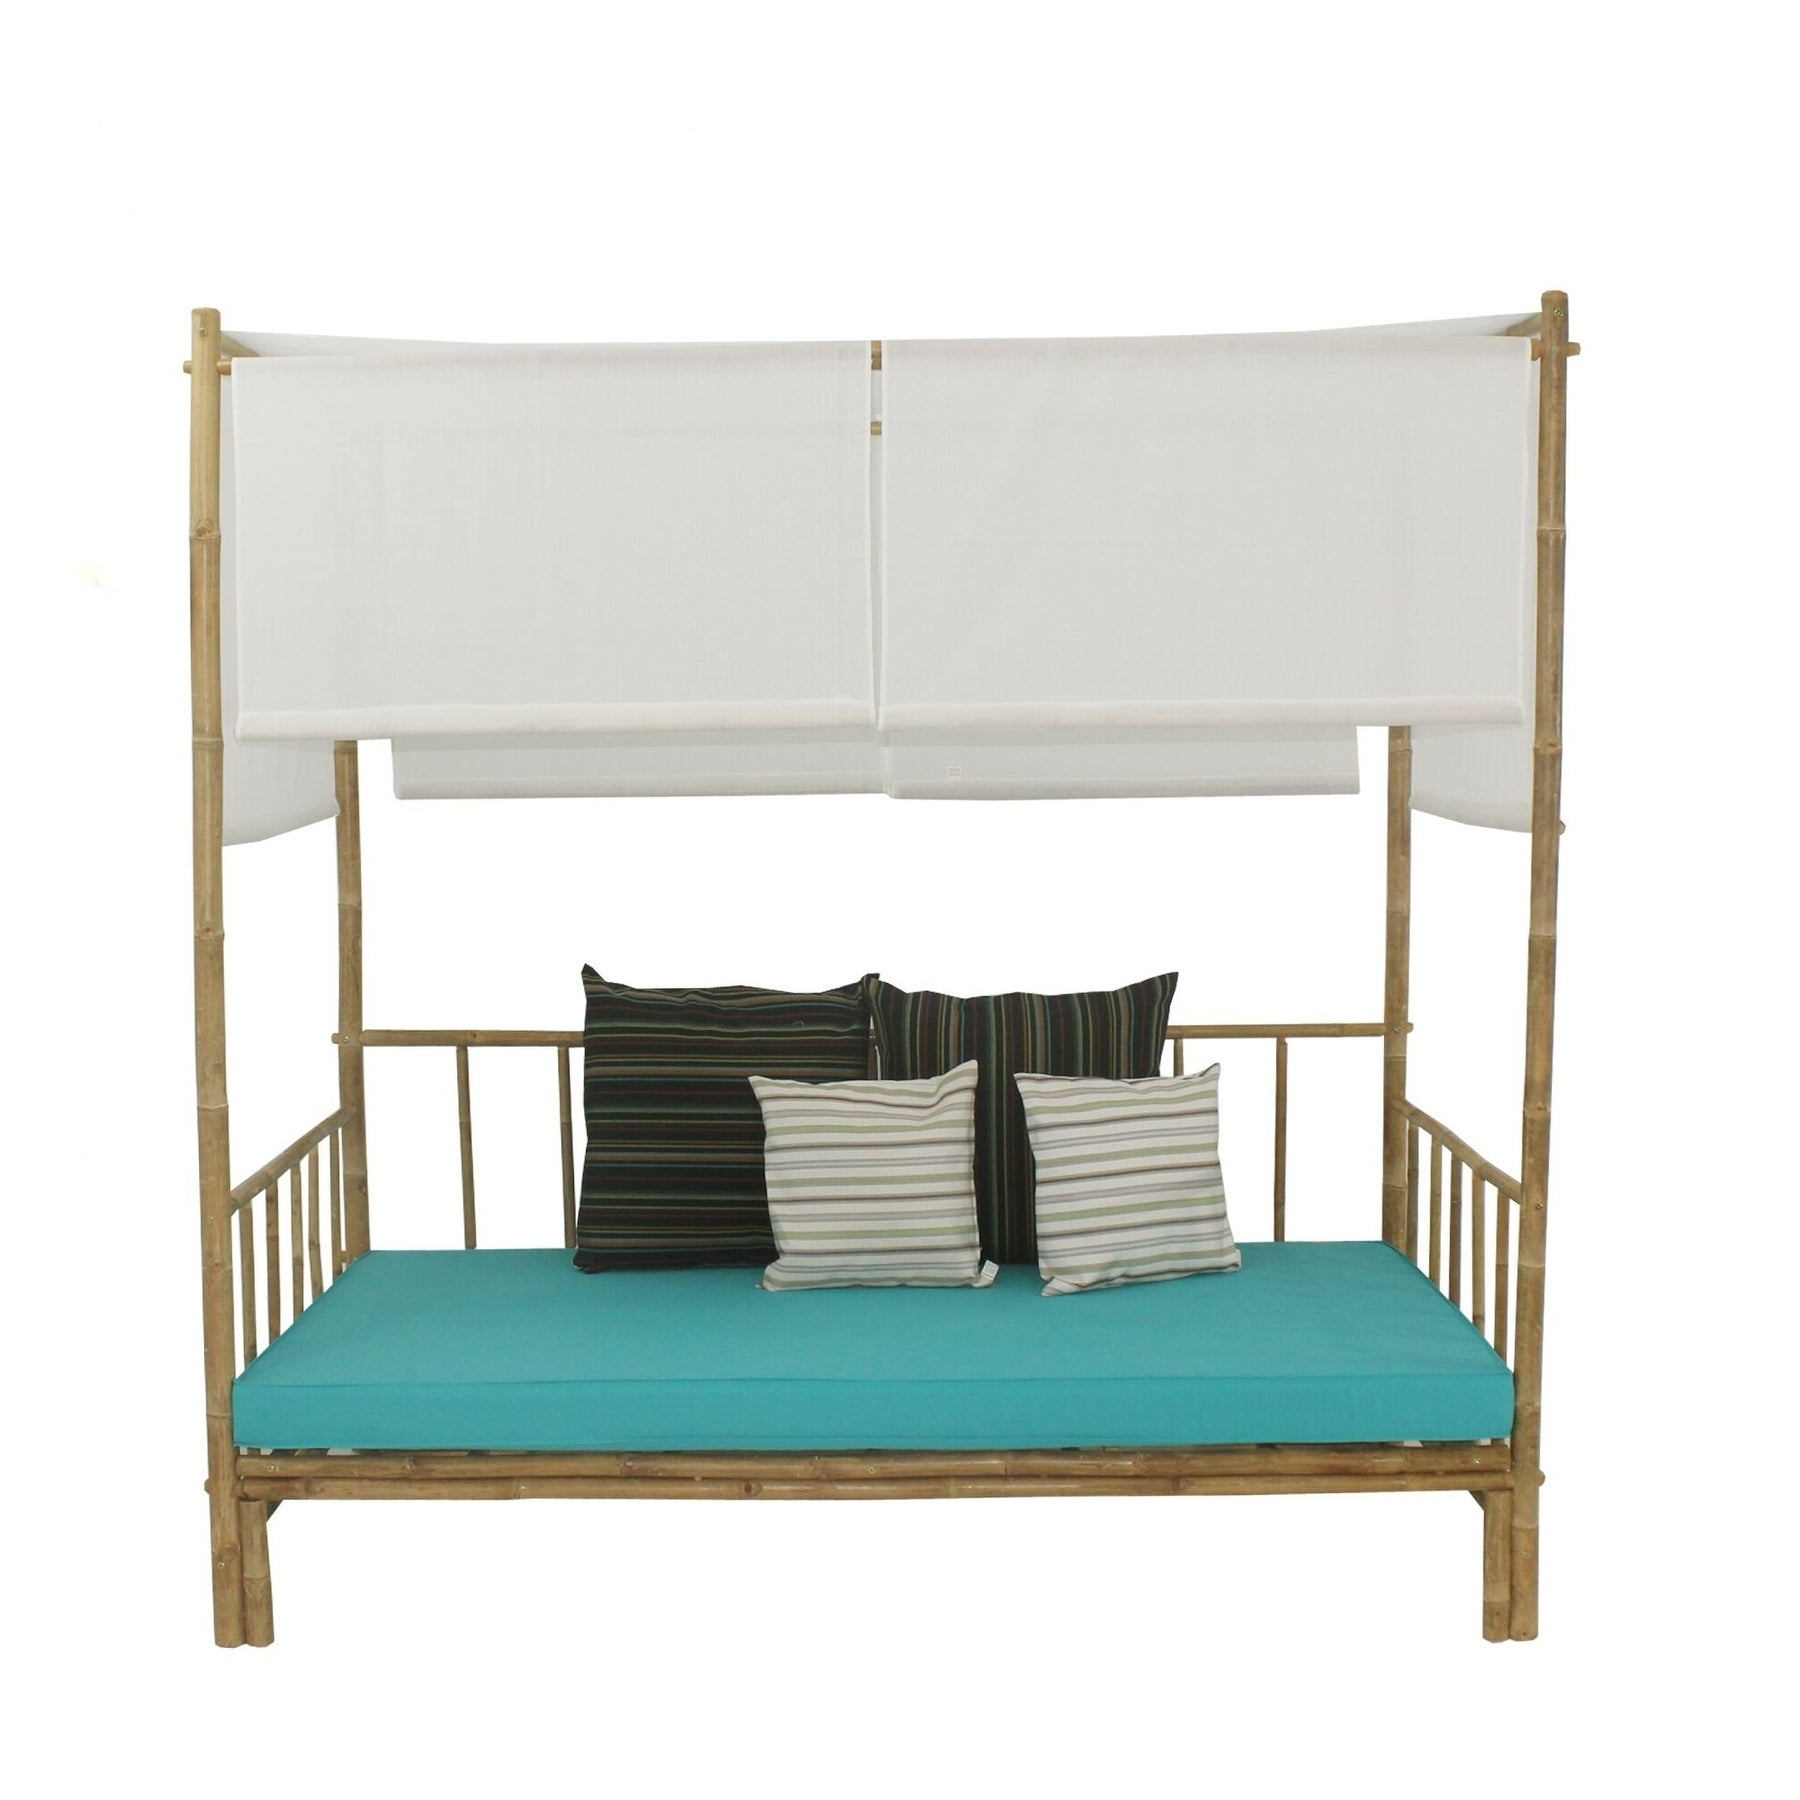 Latest Bamboo Daybeds With Canopy Inside Bamboo Daybed With Canopy (View 7 of 25)